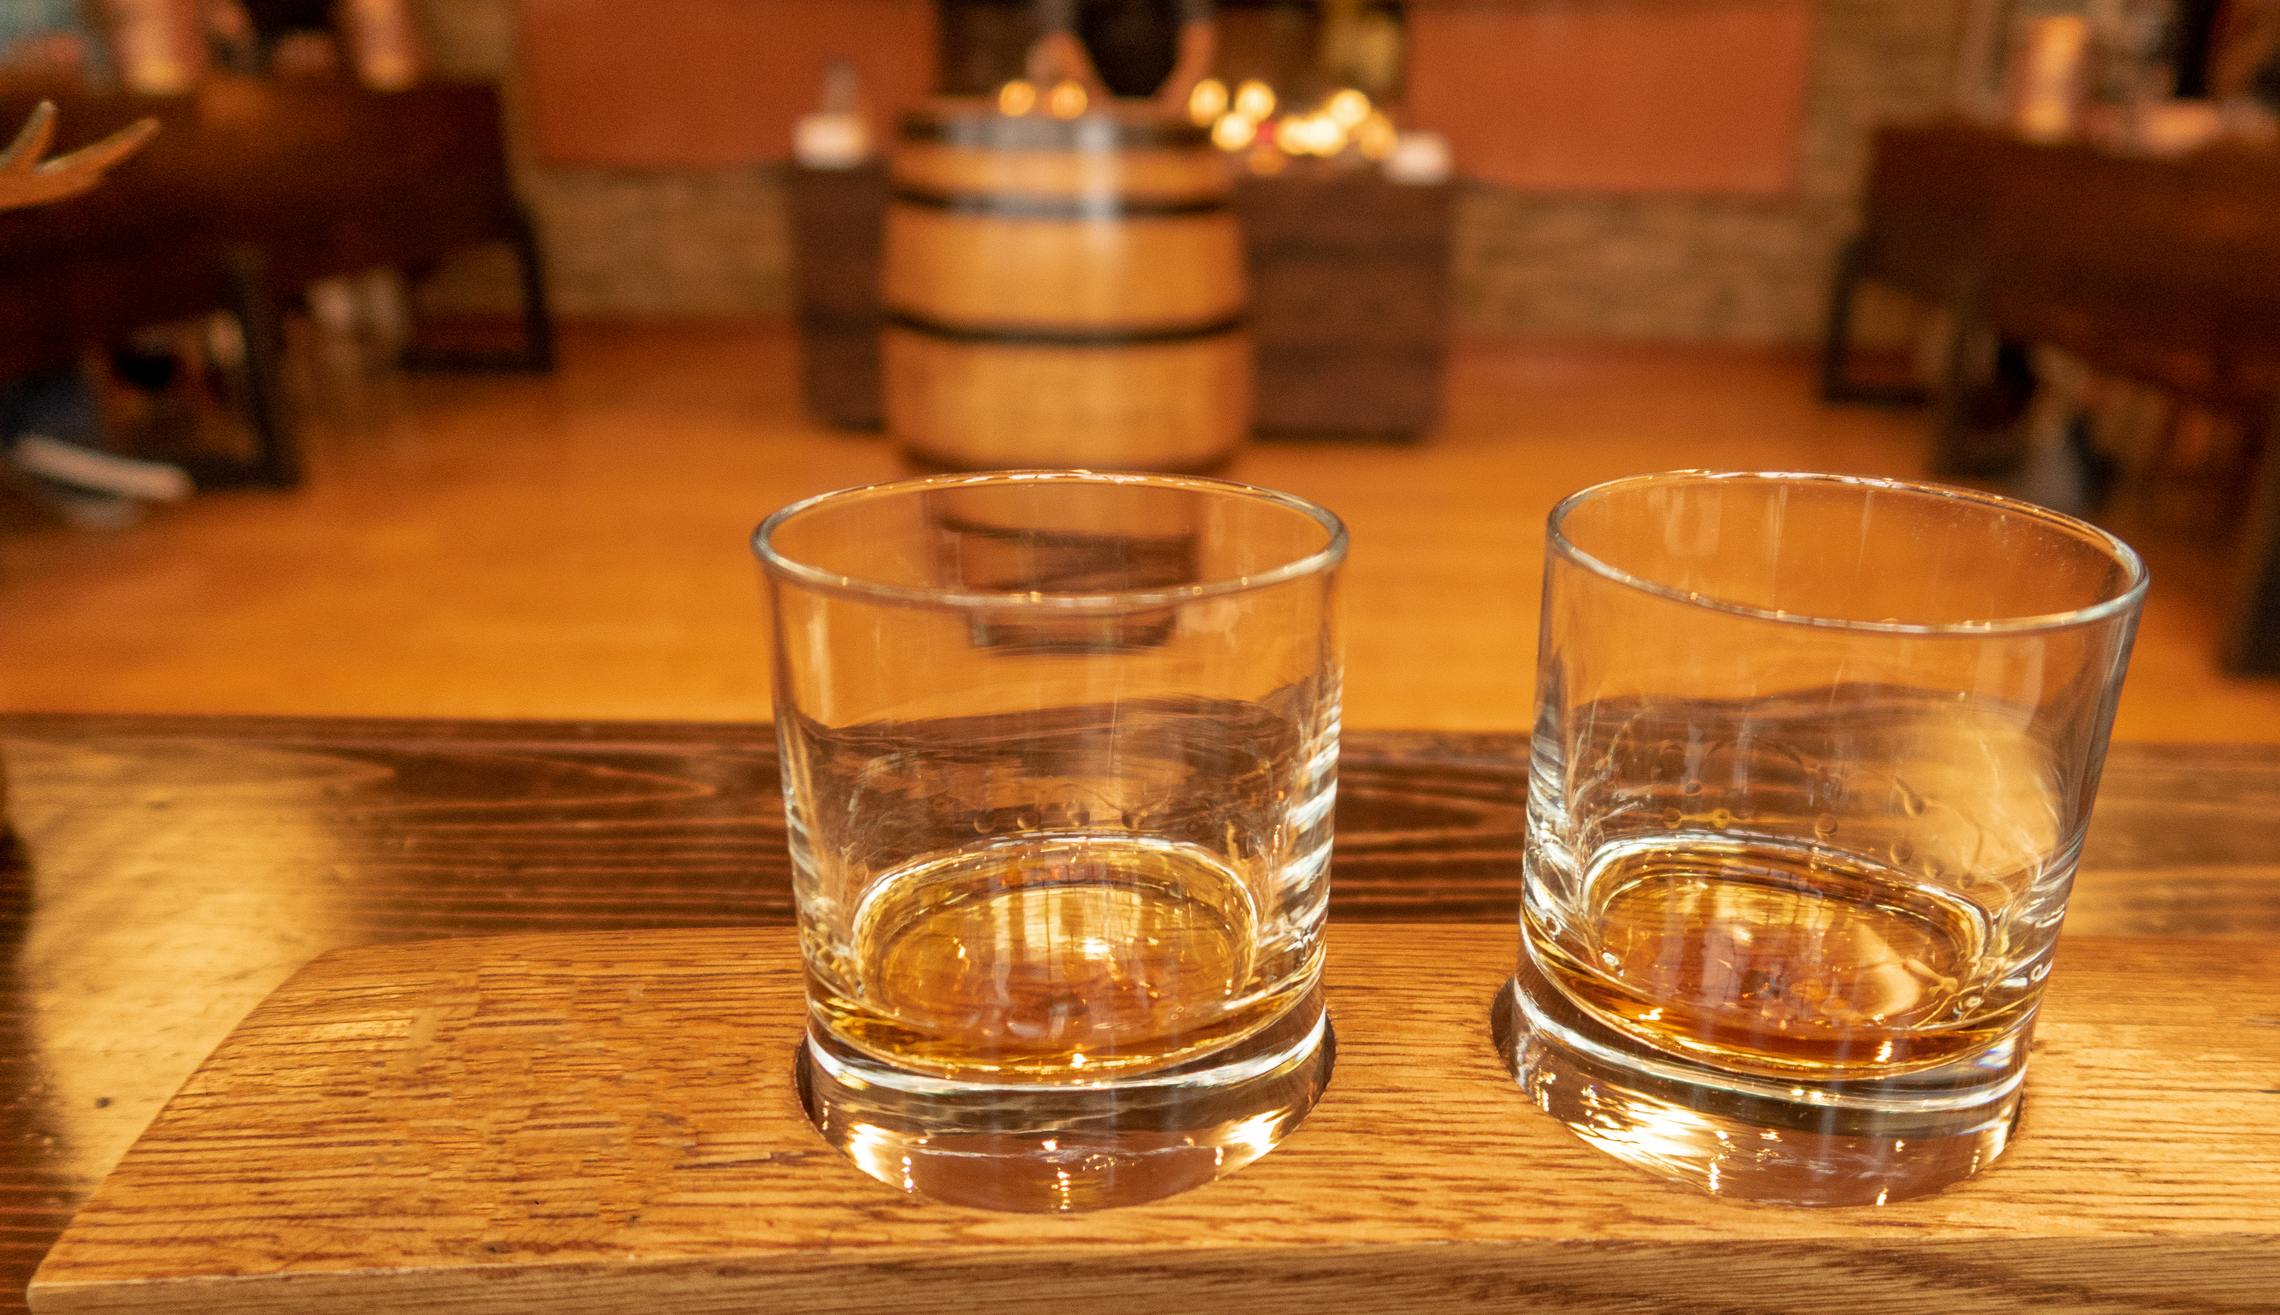 Two glasses of bourbon